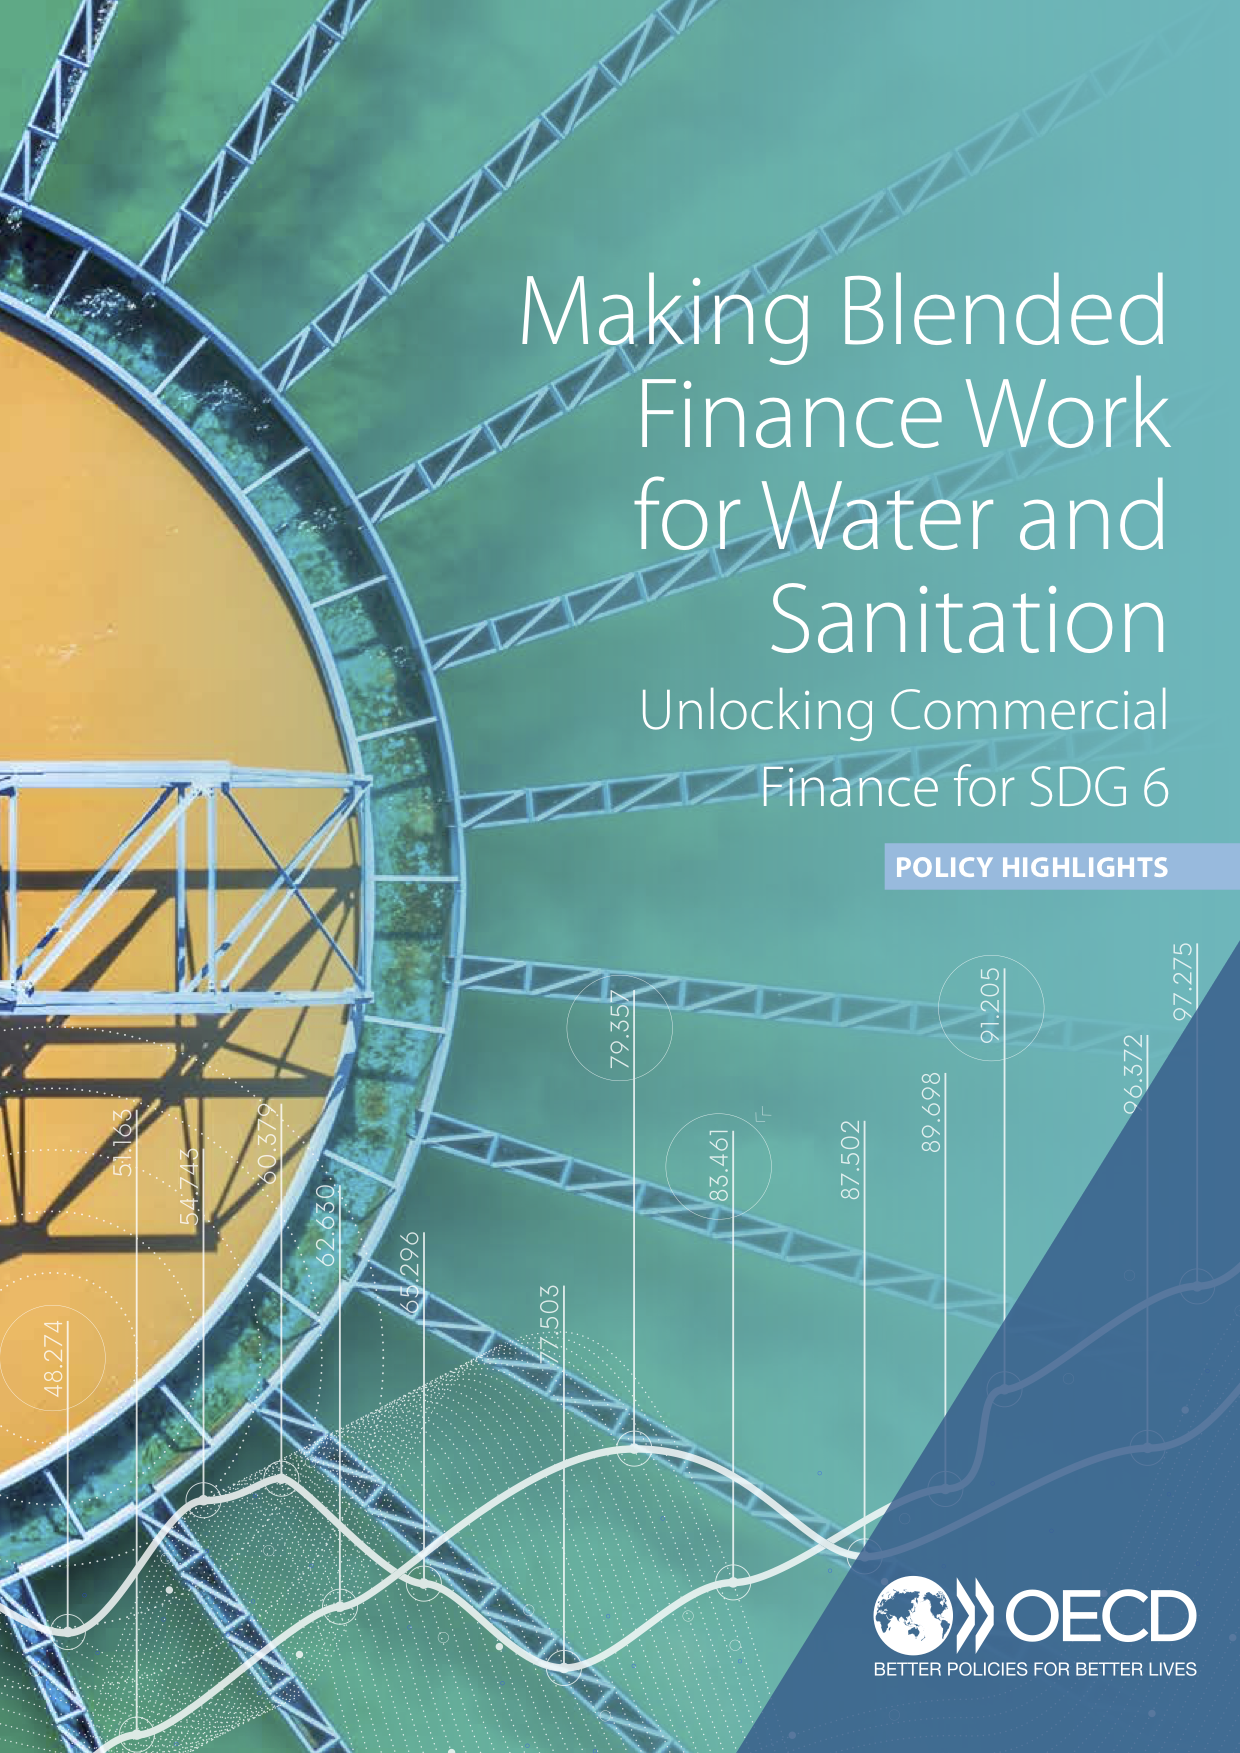 Making Blended Finance Work for Water and Sanitation: Unlocking Commercial Finance for SDG6